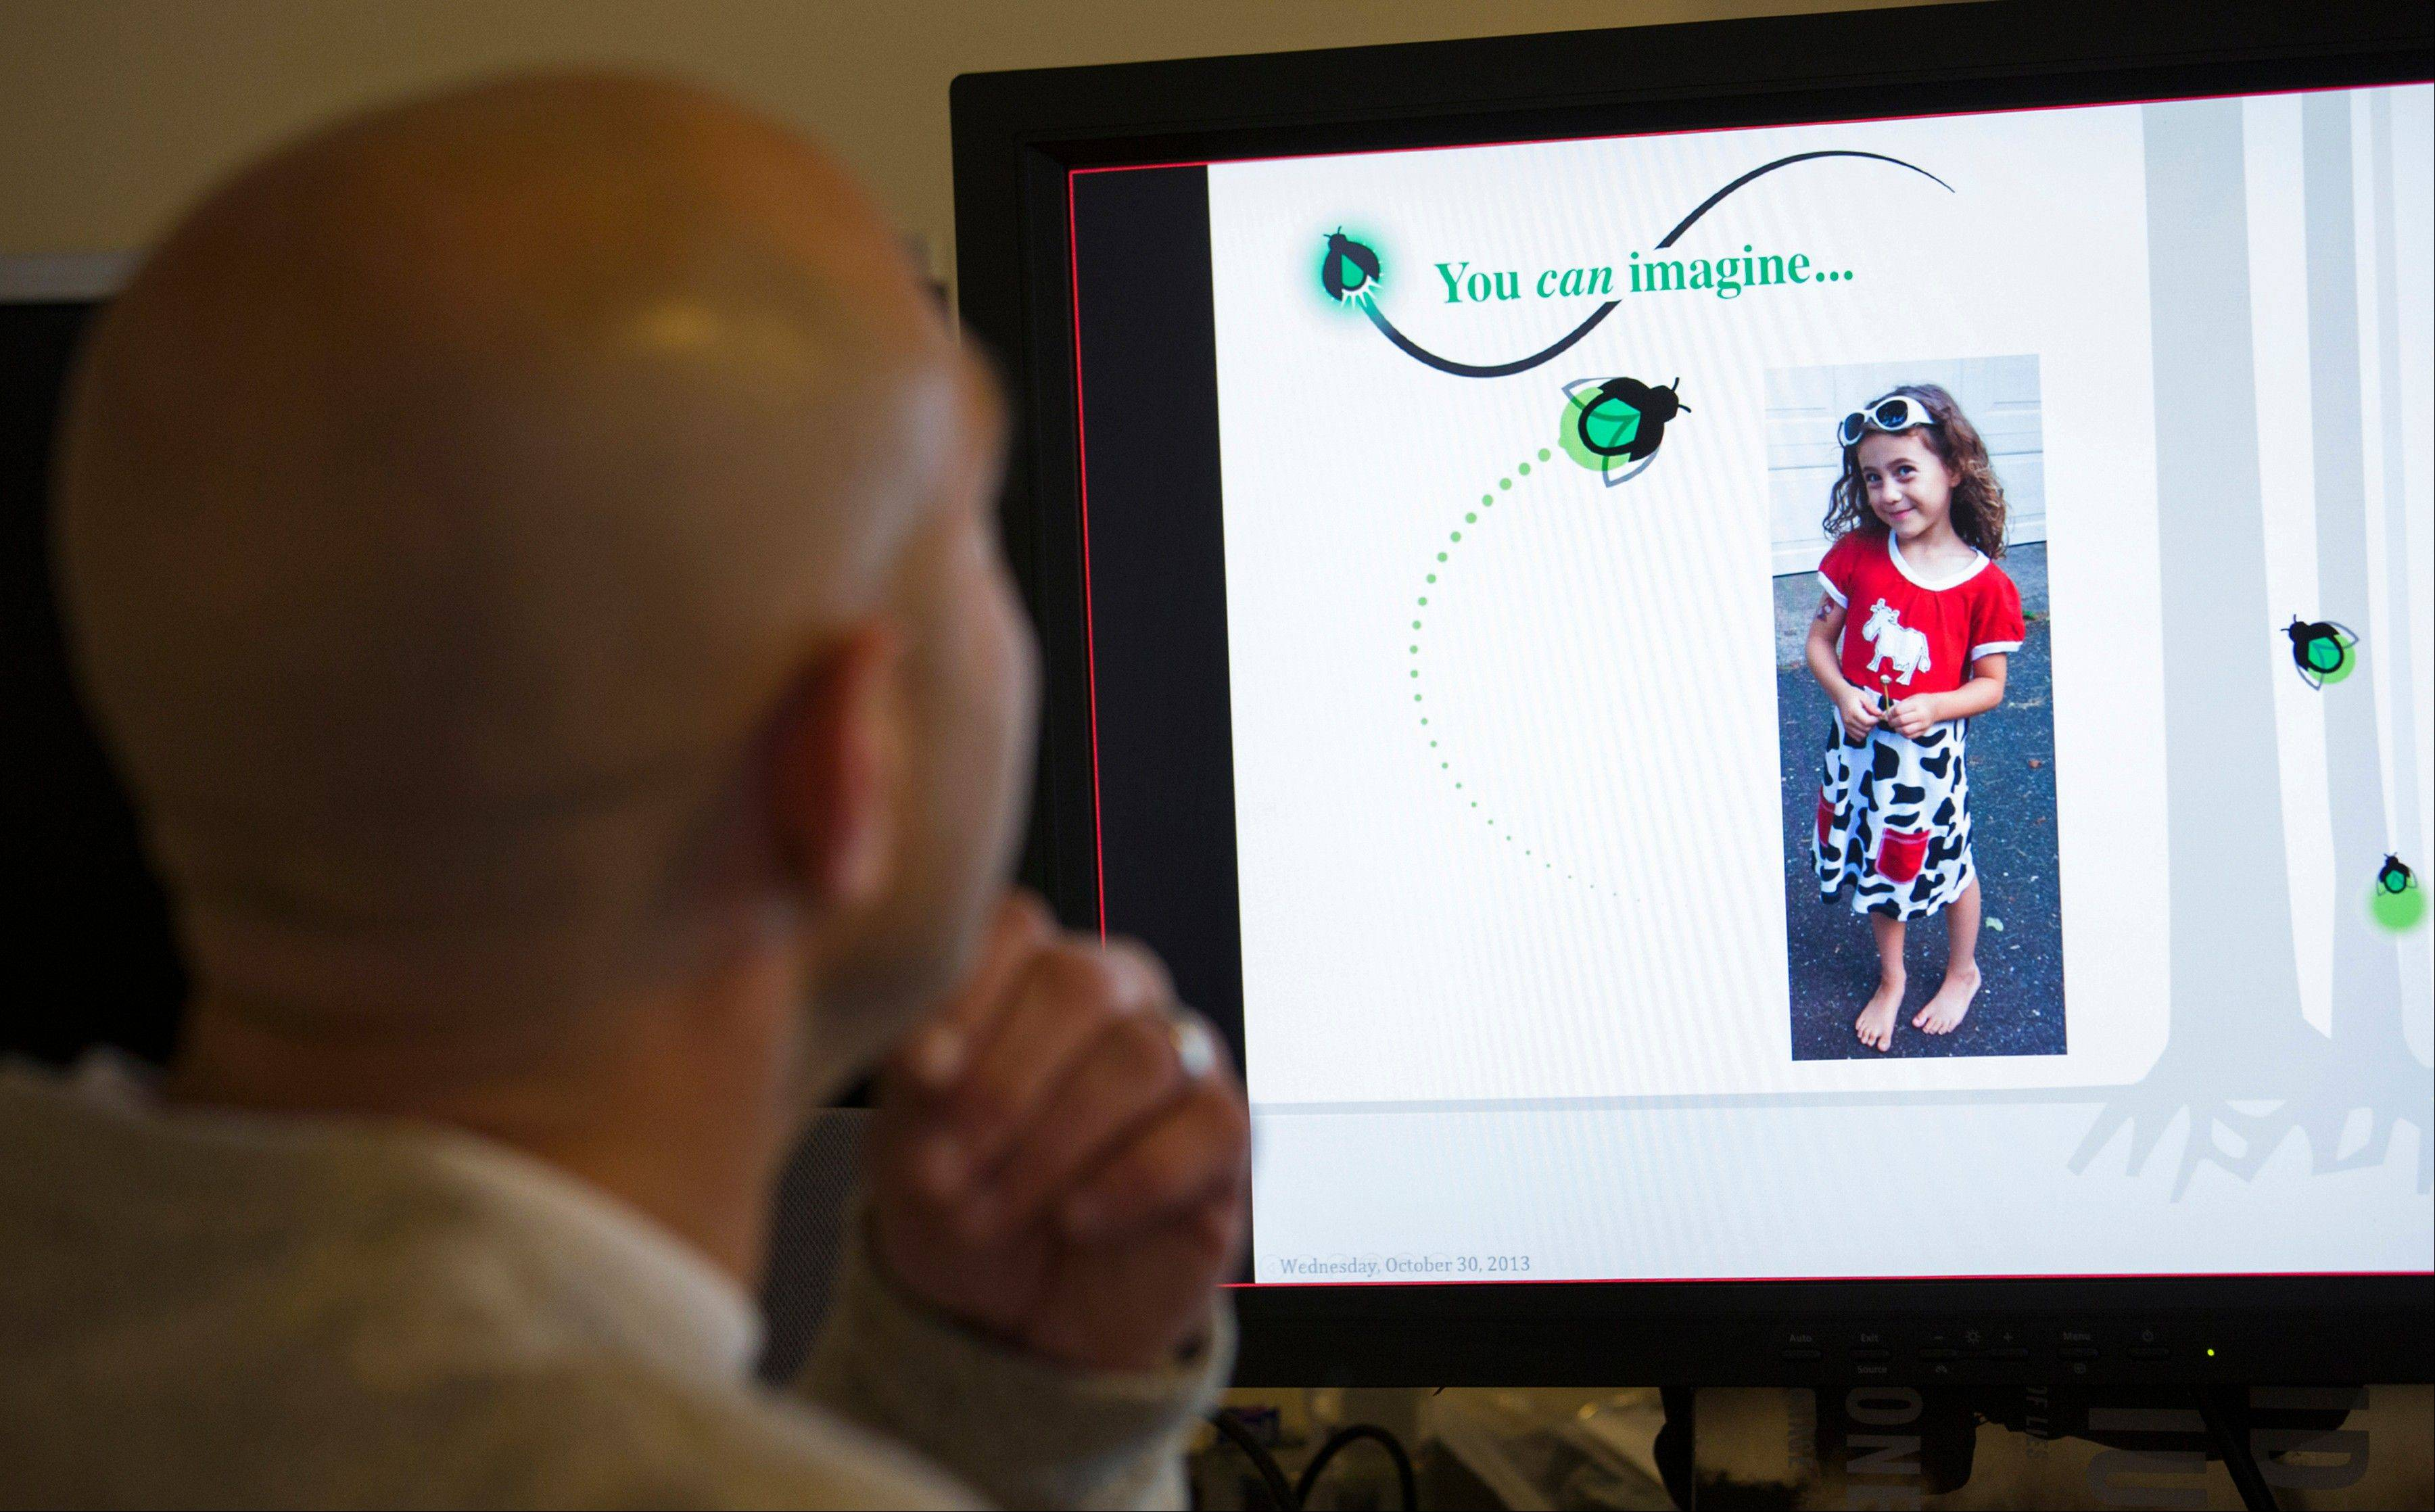 Jeremy Richman looks at a picture of his daughter, Avielle Richman, on his computer screen as he gives a lecture via Skype on behalf of the Avielle Foundation from his Newtown, Conn. home. Avielle was one of 20 Sandy Hook Elementary School students that were killed in a mass shooting Dec. 14, 2012.